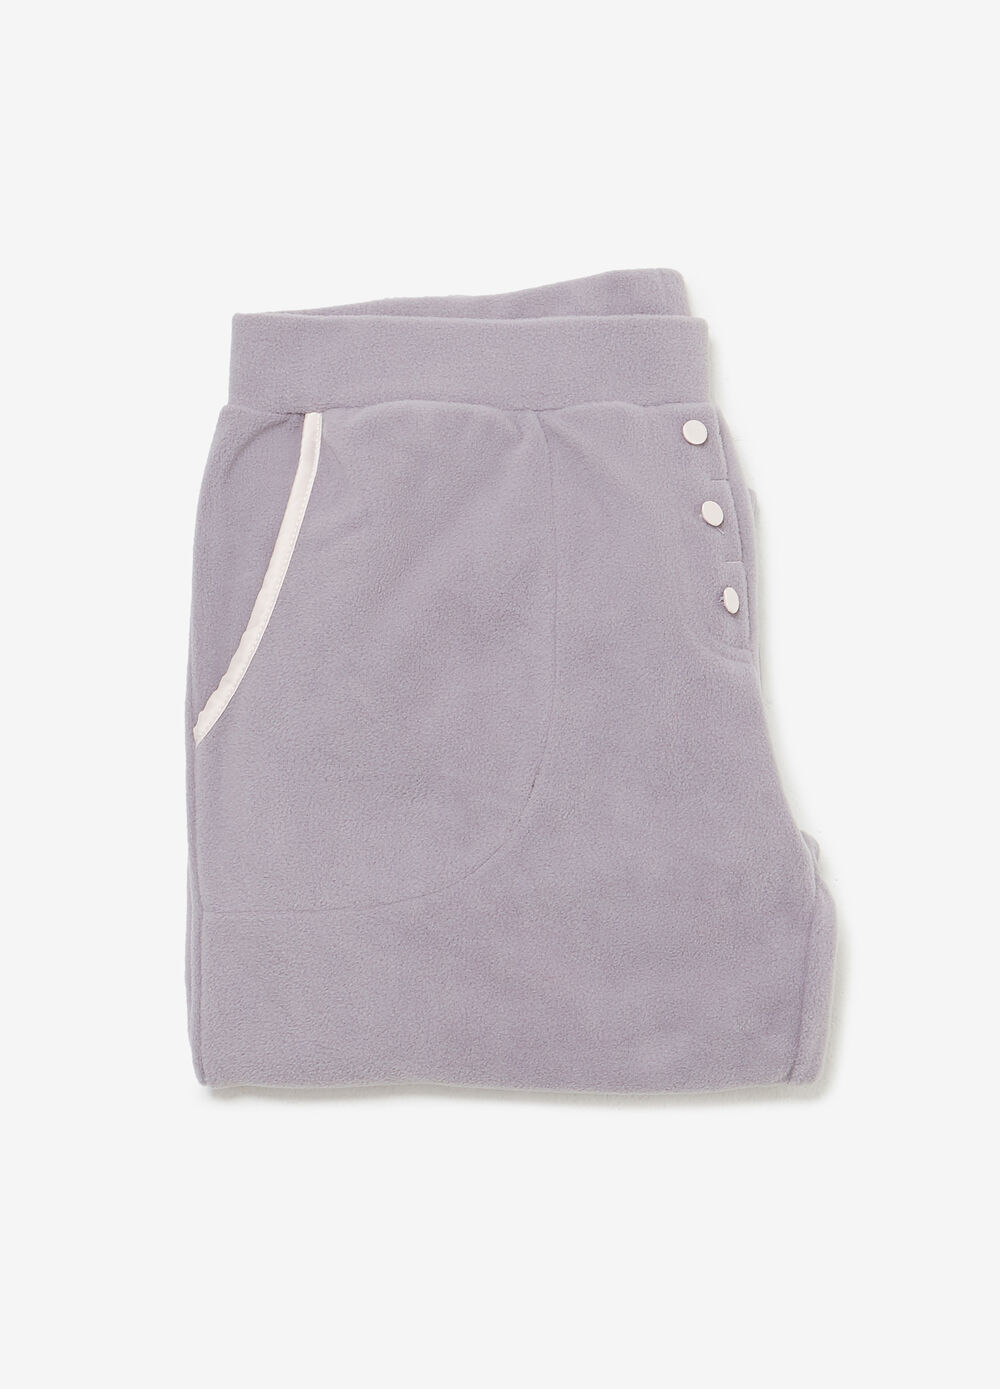 Pyjama trousers with buttons and pockets